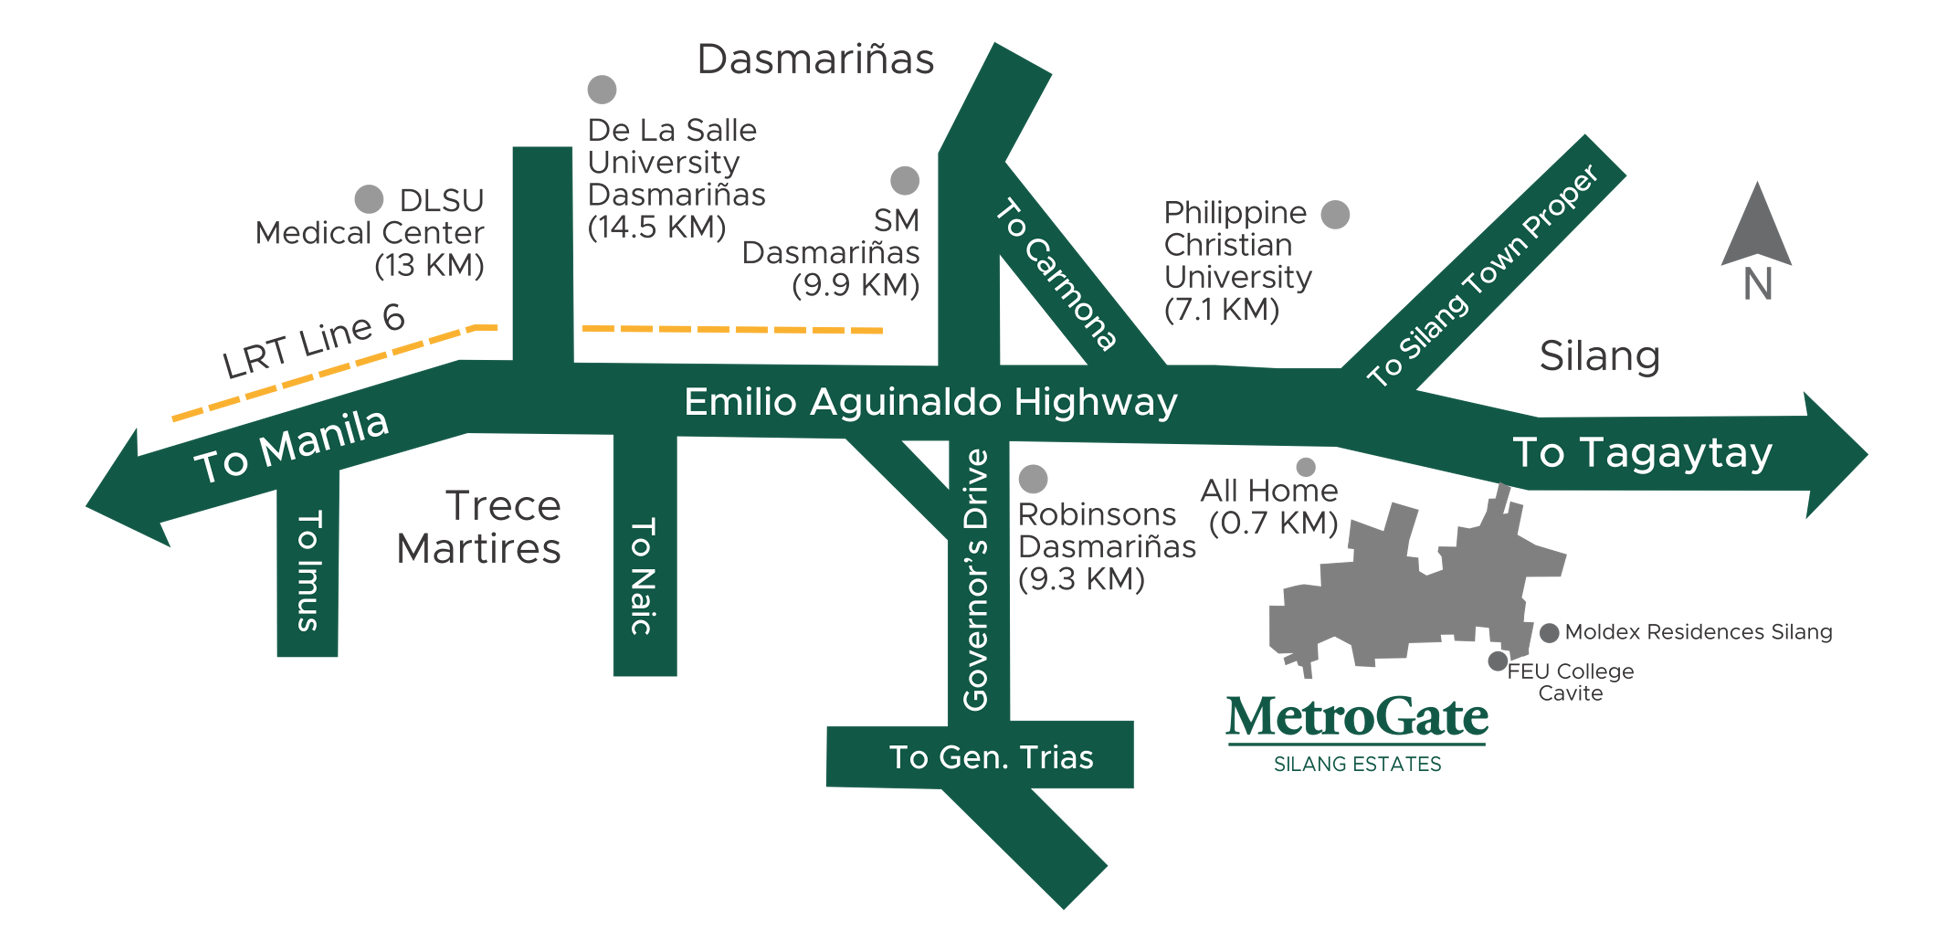 Metrogate Silang Estates location map